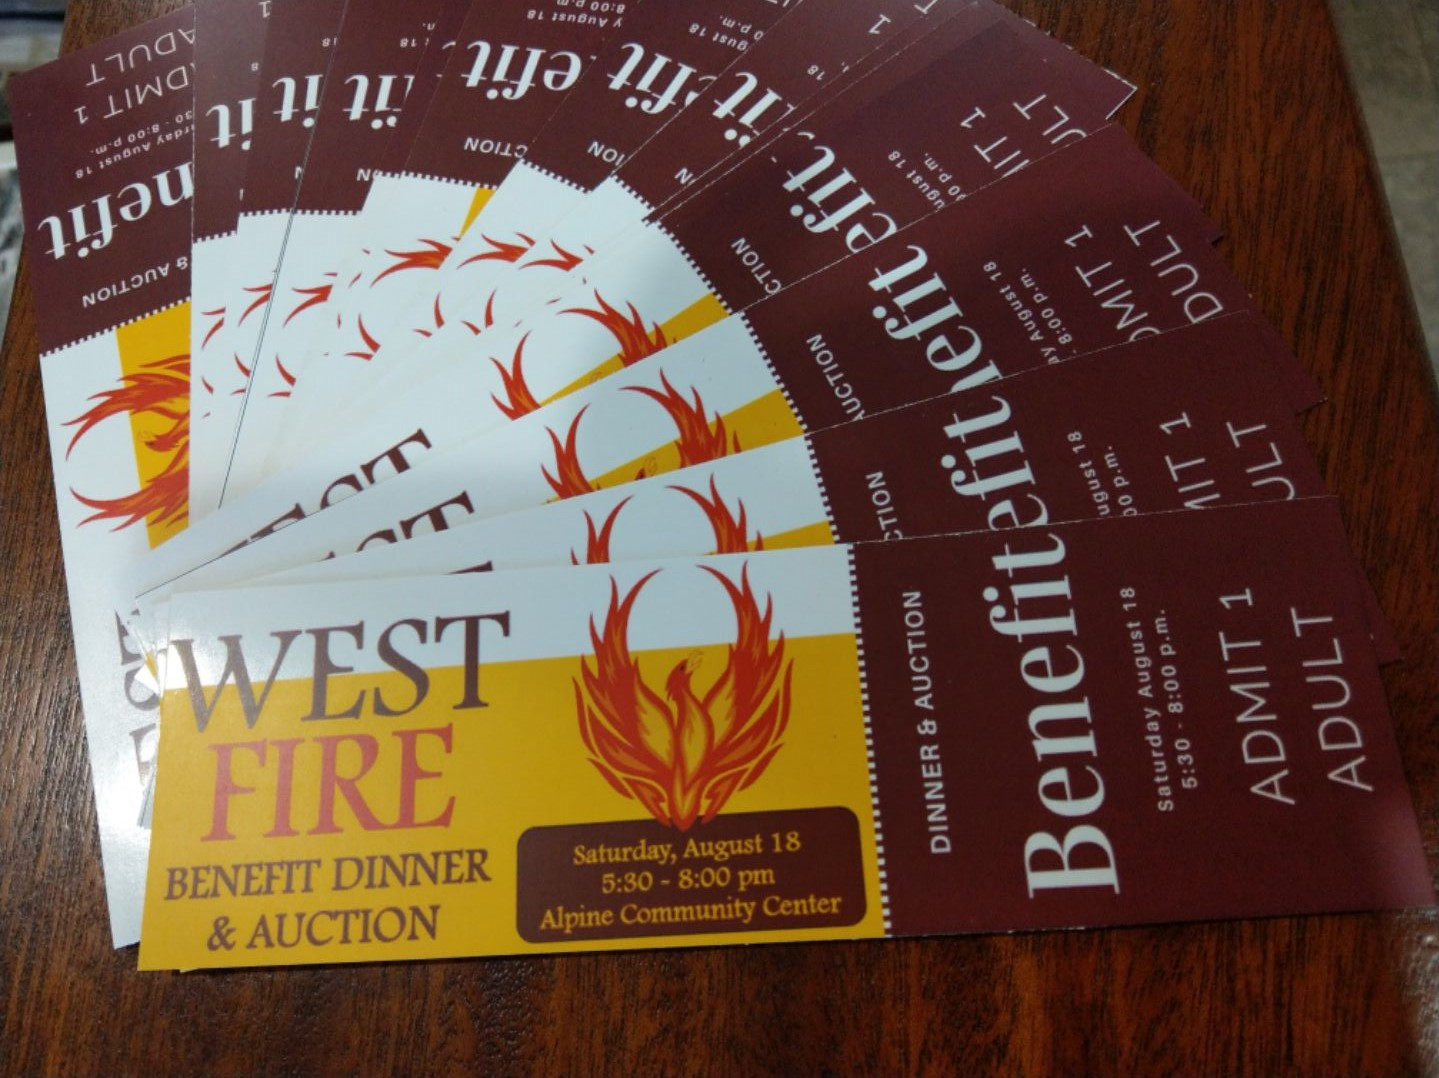 Alpine to hold major benefit for West Fire survivors